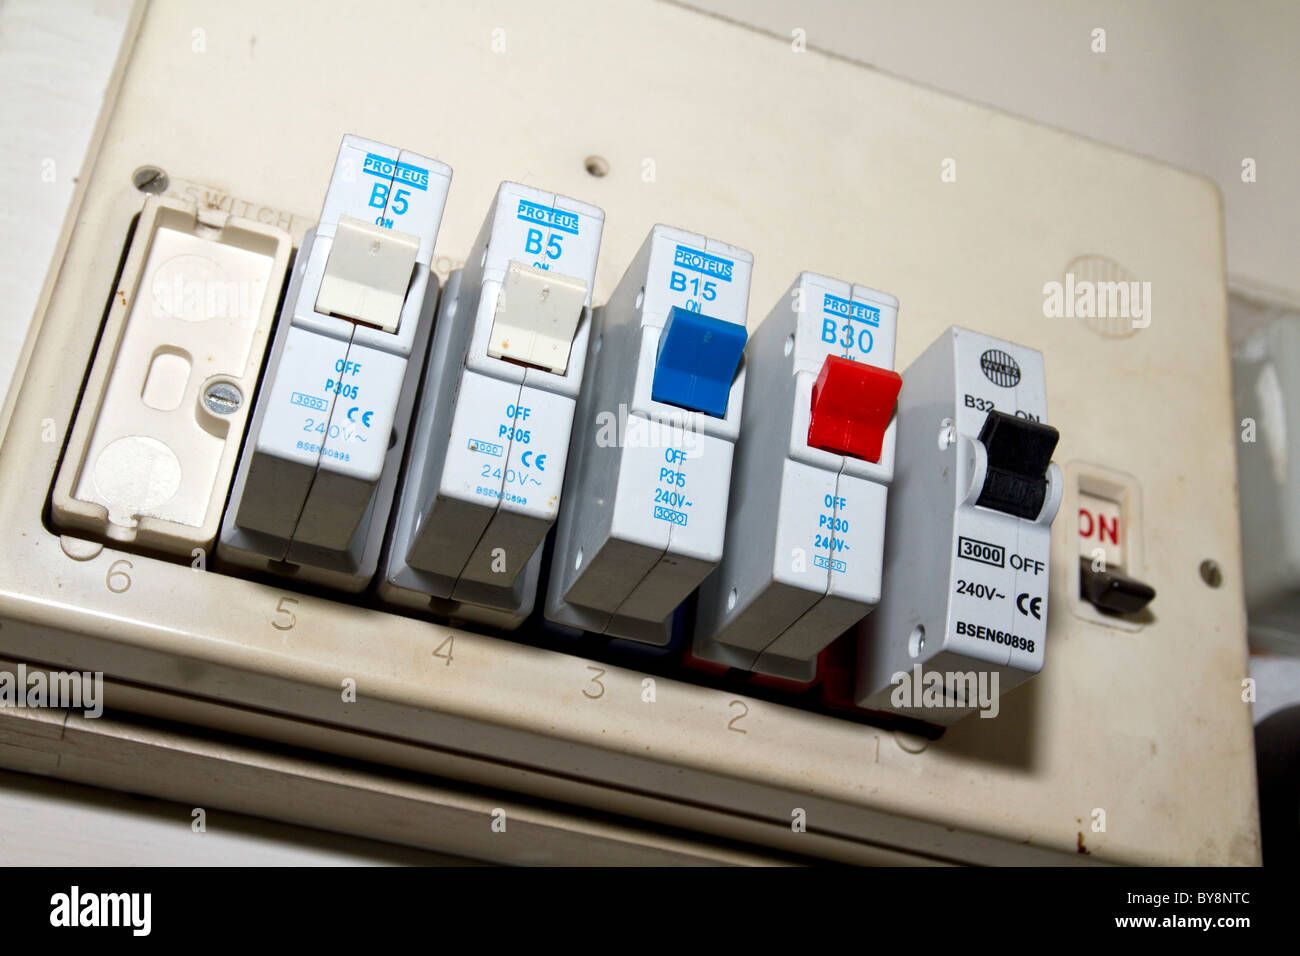 uk old electric fuse box in a london house BY8NTC uk old electric fuse box in a london house stock photo, royalty old style fuse box circuit breakers at bakdesigns.co